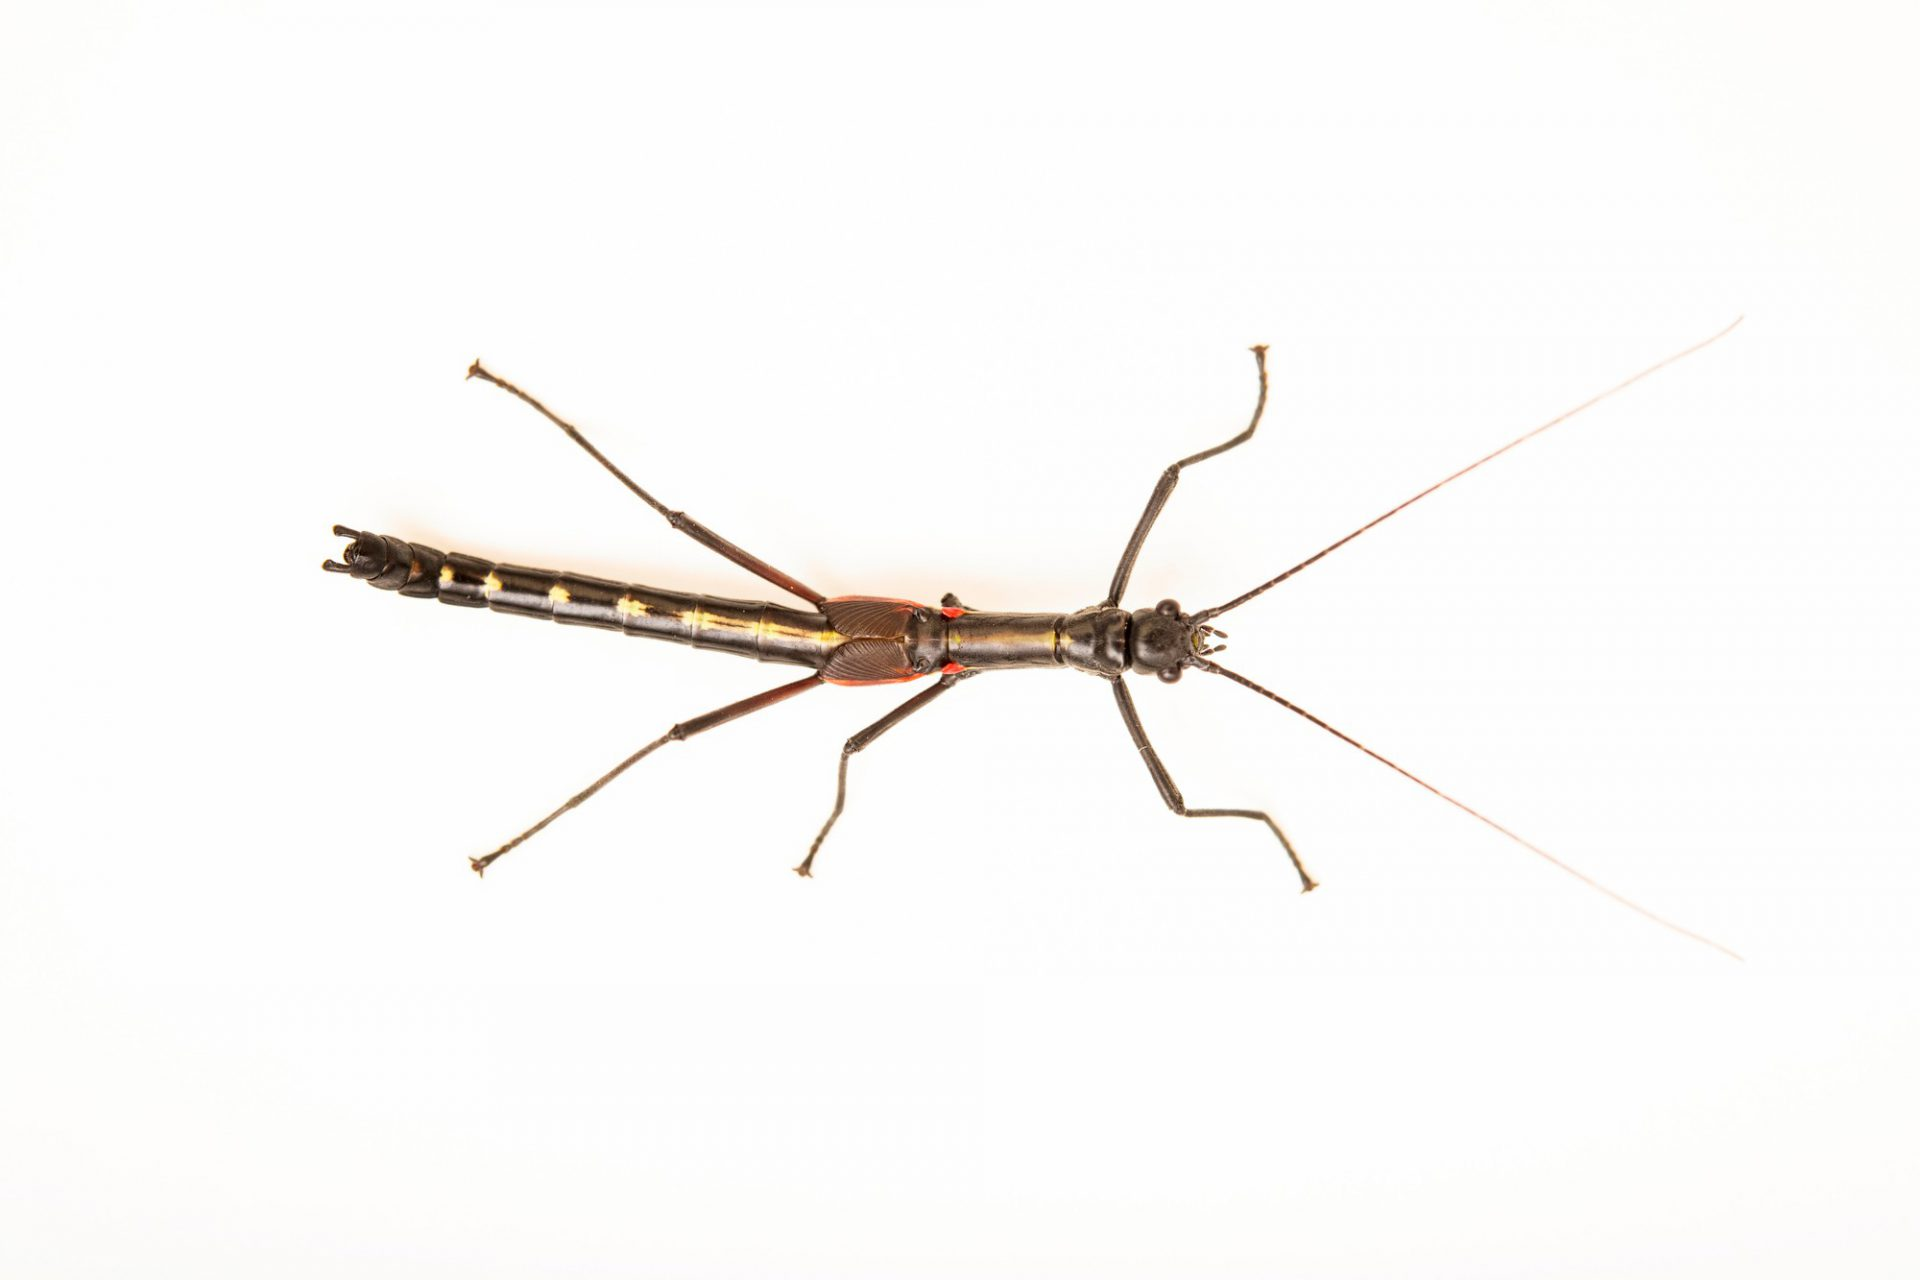 Photo: A stick insect (Orthomeria kangi) at the University of the Philippines.